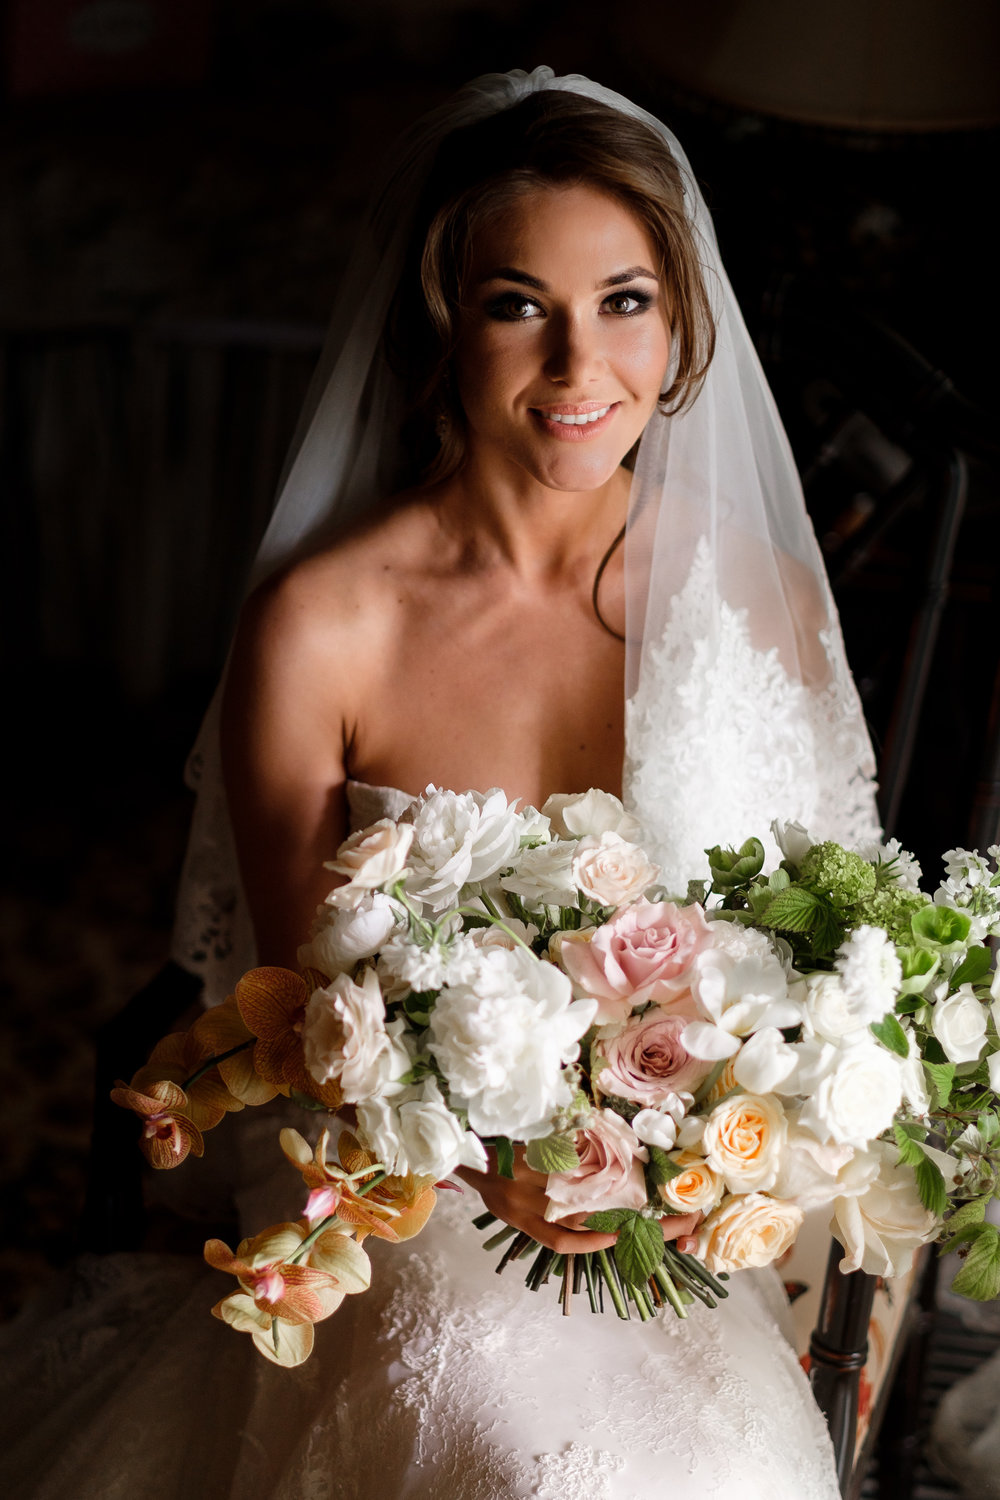 WeddingMarinaAlex_0153.jpg